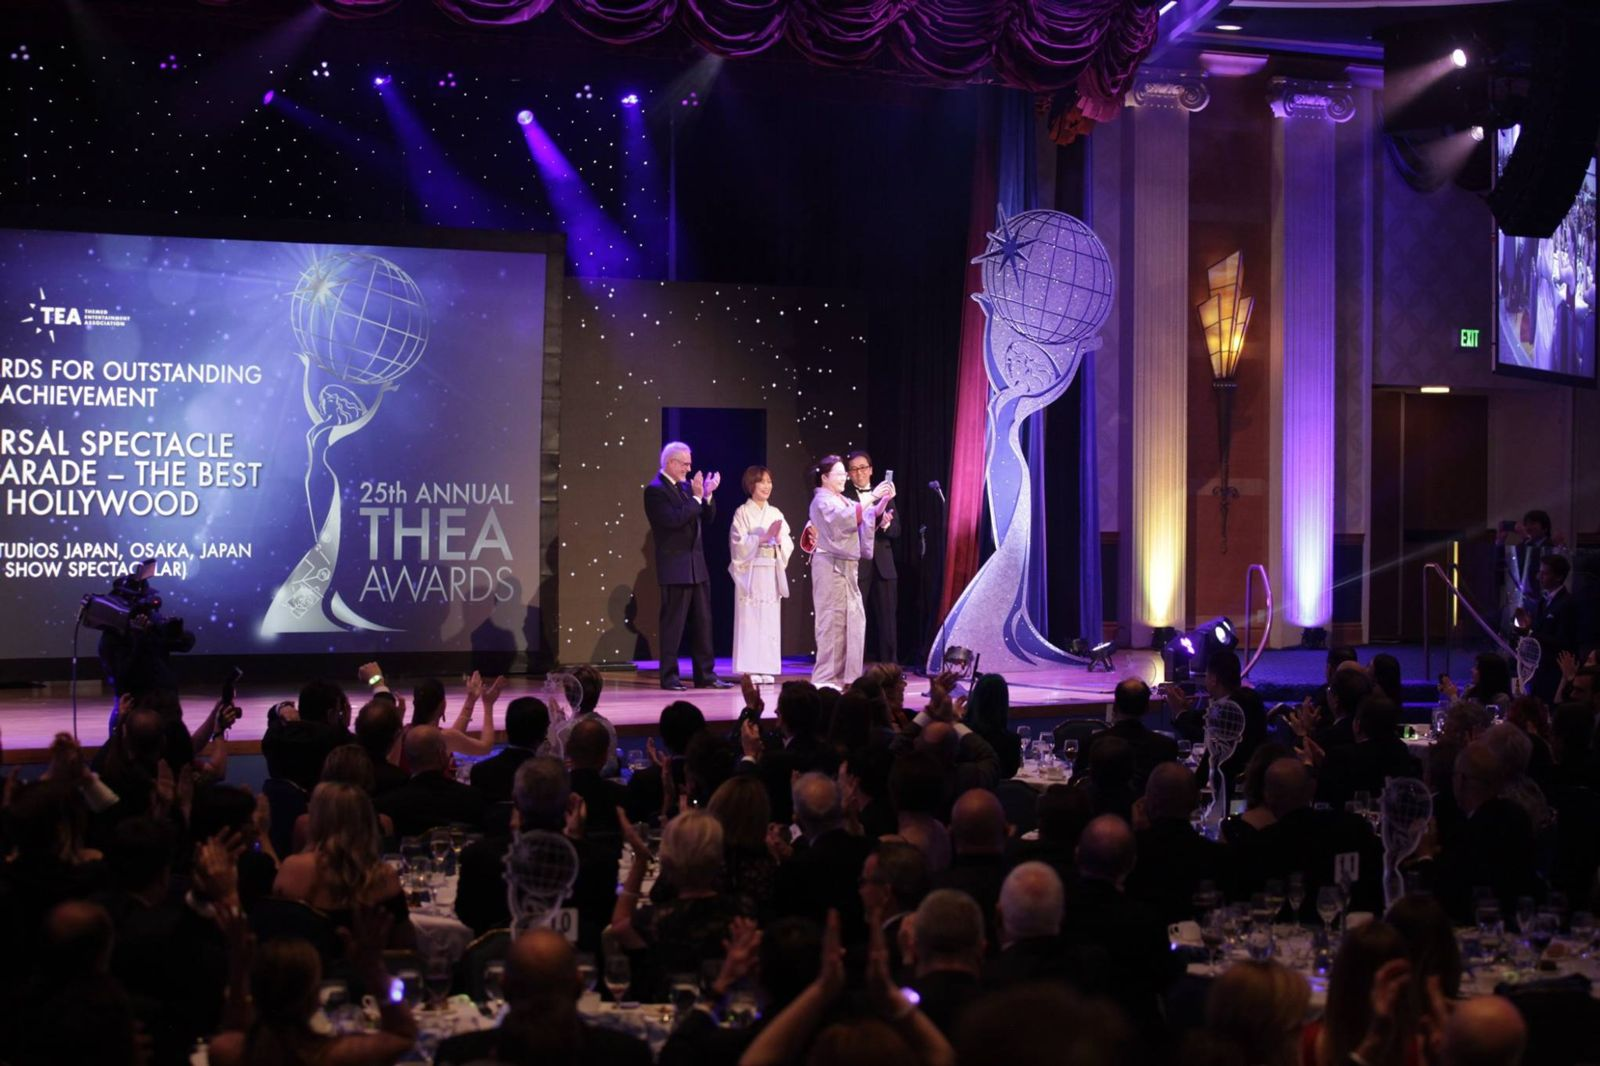 TEA call for Thea Awards nominations - deadline July 8, 2019